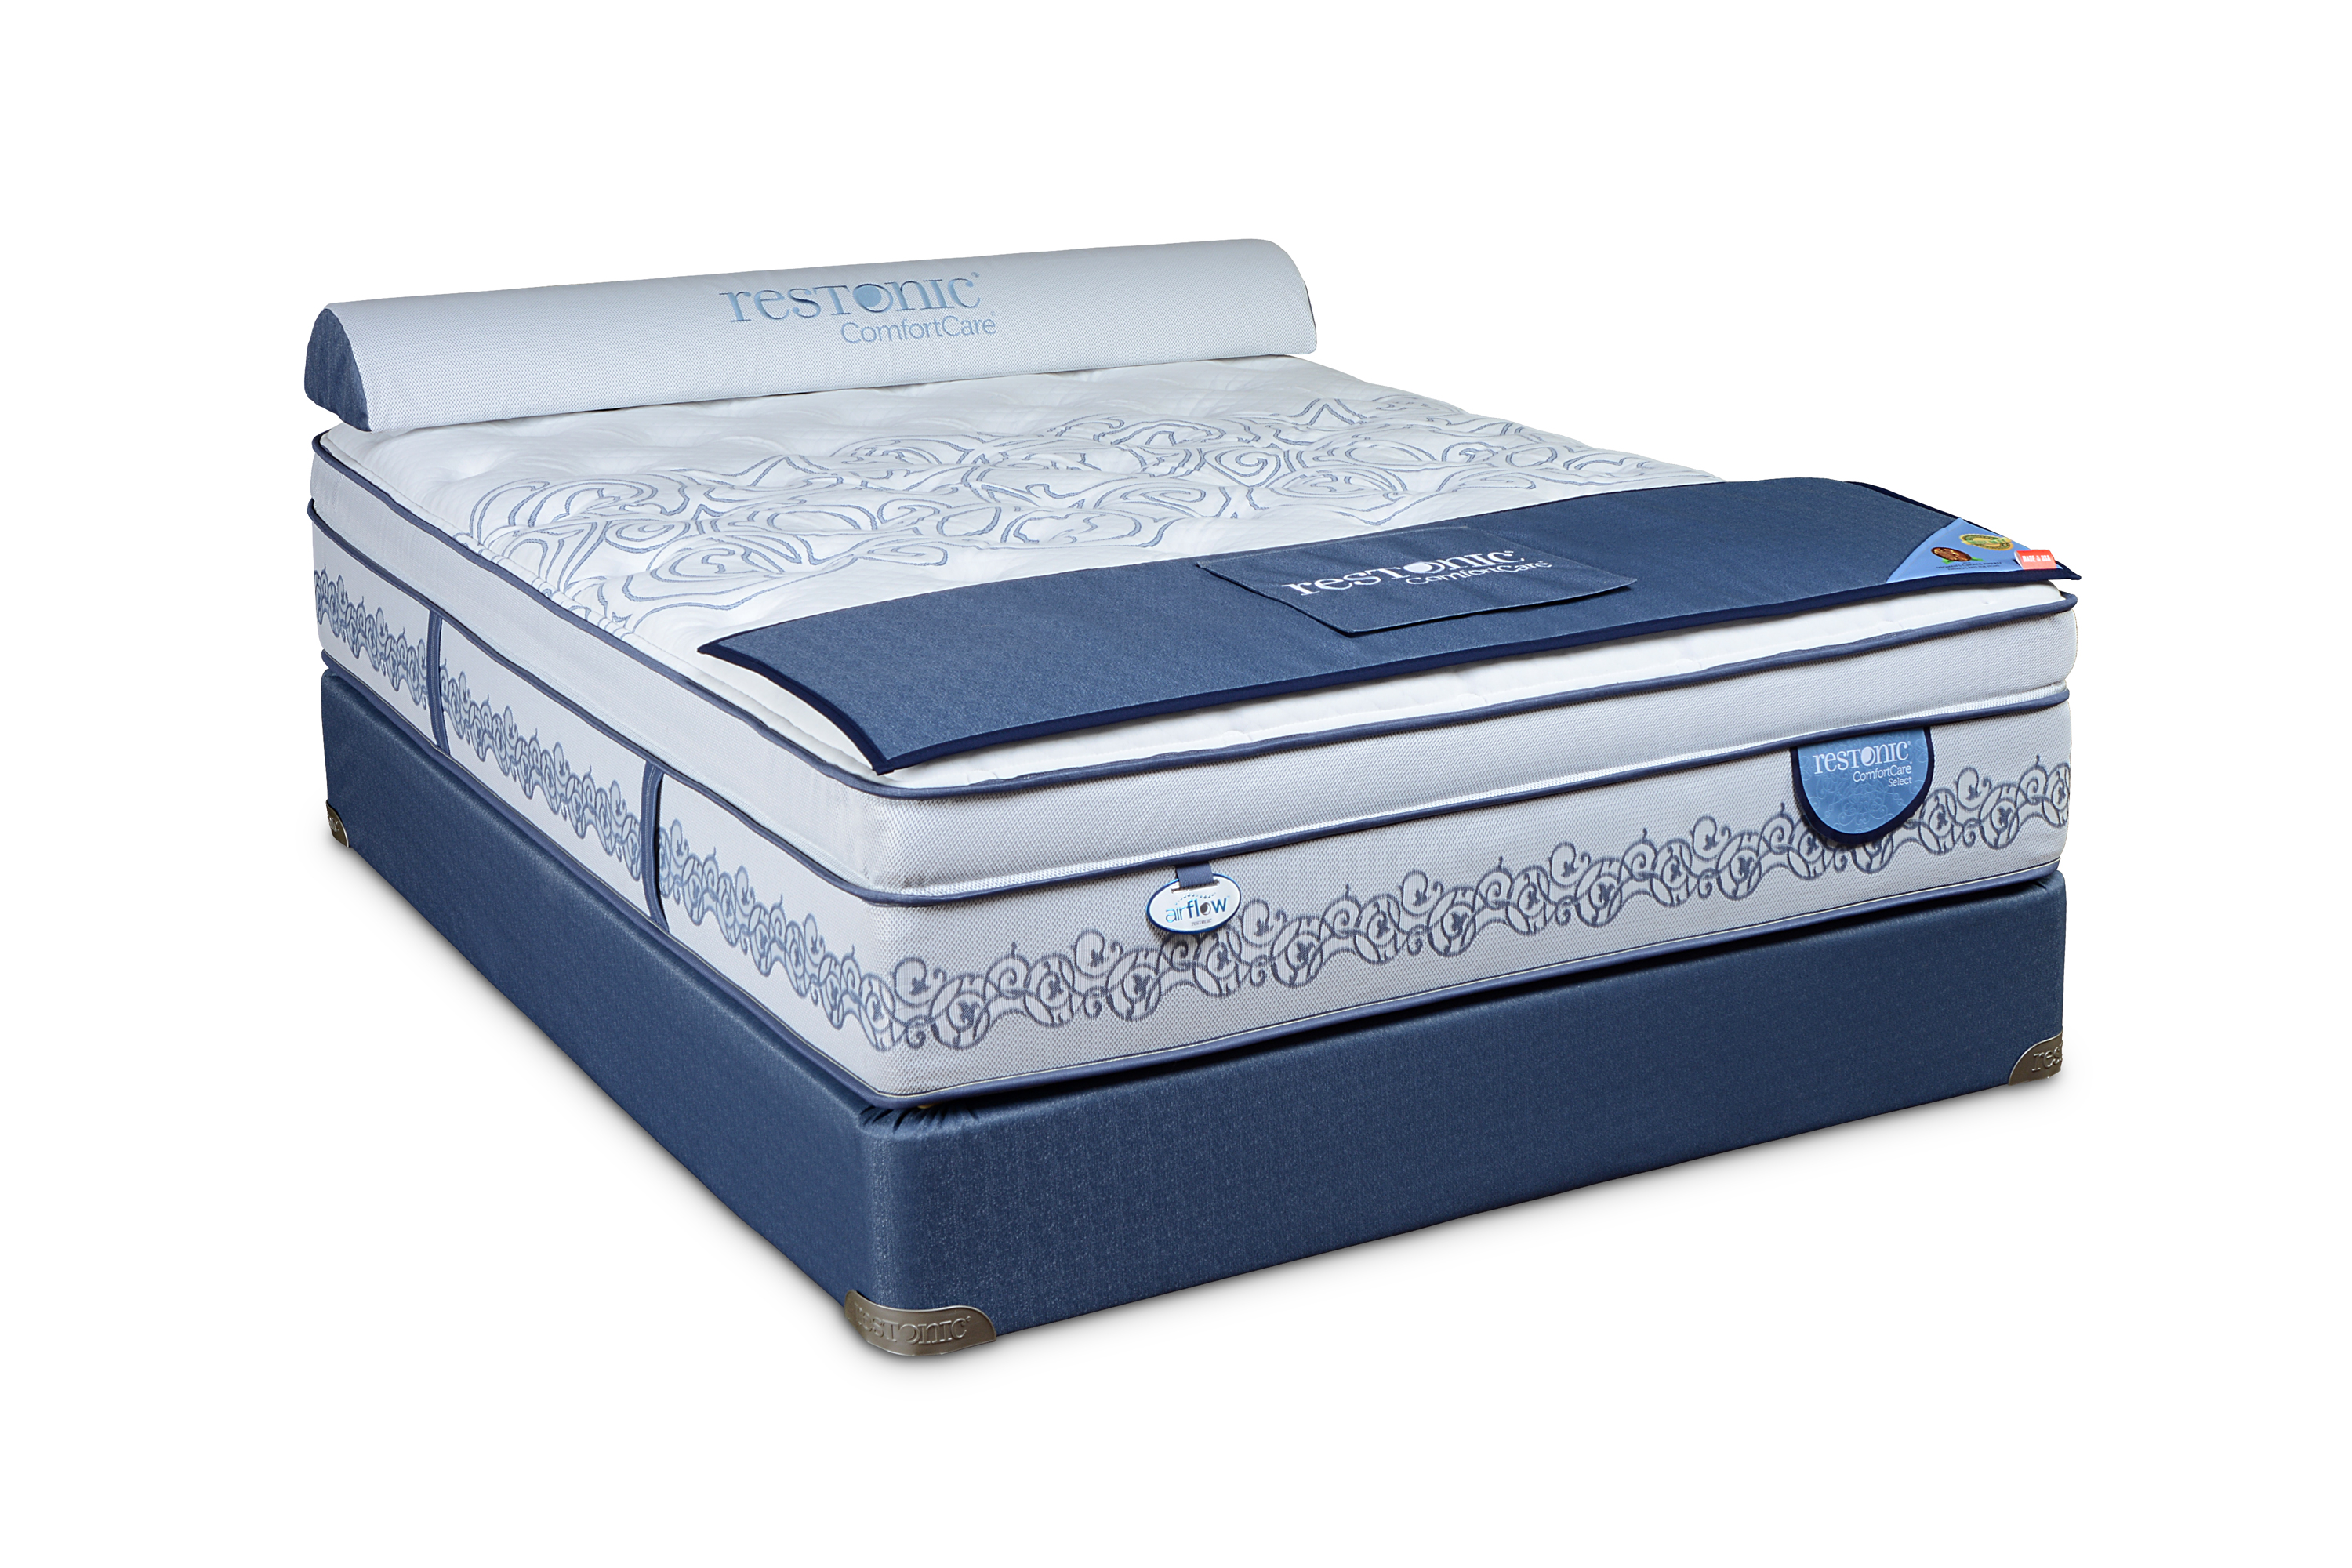 beds use hybrid support in market with beautyrestplatinum components proprietary hybrids bustle system hustle symbol checkerboard vegas plus las at brand and aplenty mattress the multiple a mattresses s pressuresense cooling pattern